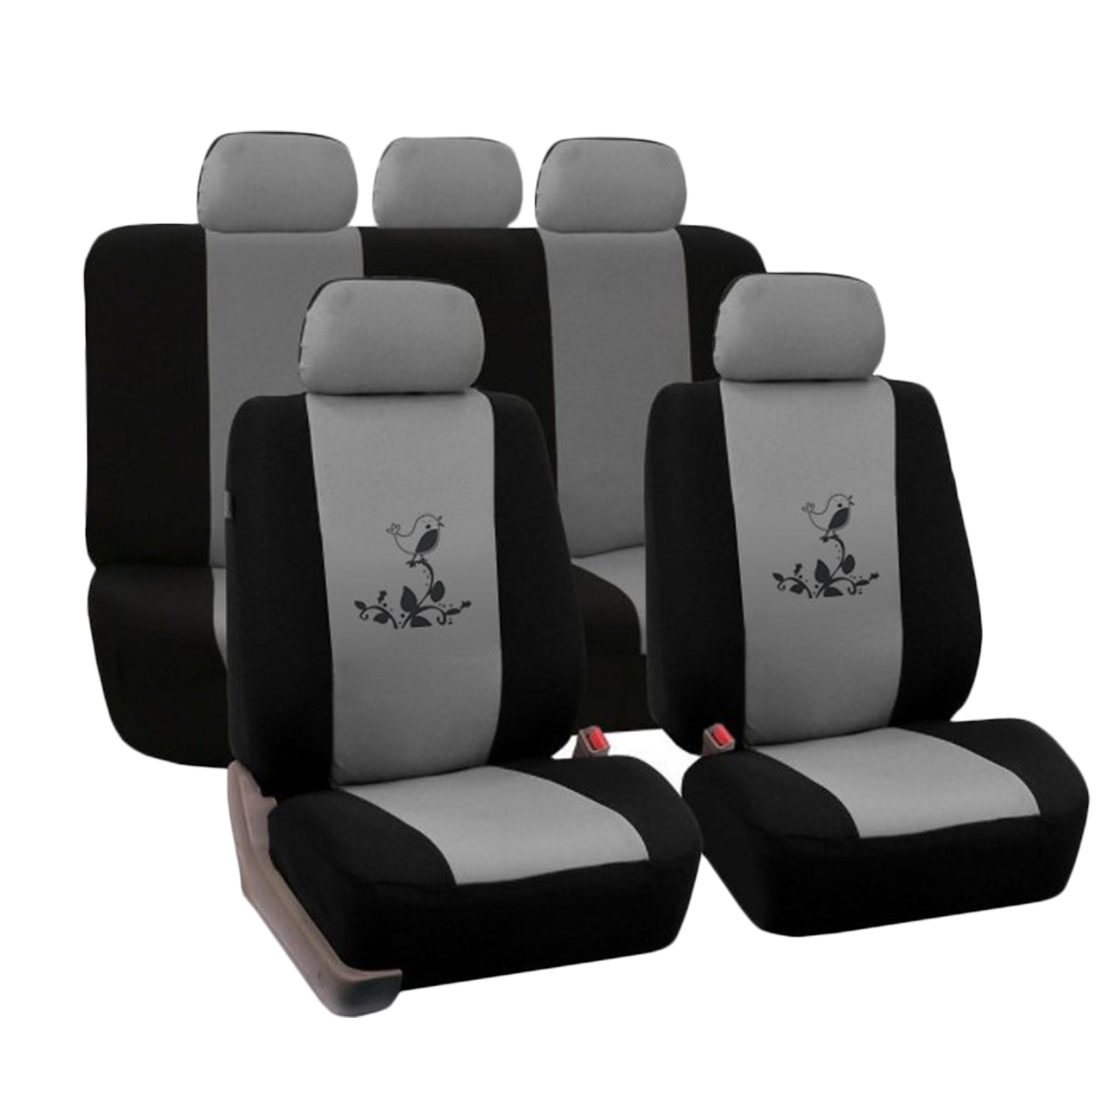 Dewtreetali Four Seasons Car Seat Cover Printing Pattern Universal Car Seat Protector Interior Accessories for Volkswagen BMW dewtreetali universal automoblies seat cover four seaons car seat protector full set car accessories car styling for vw bmw audi